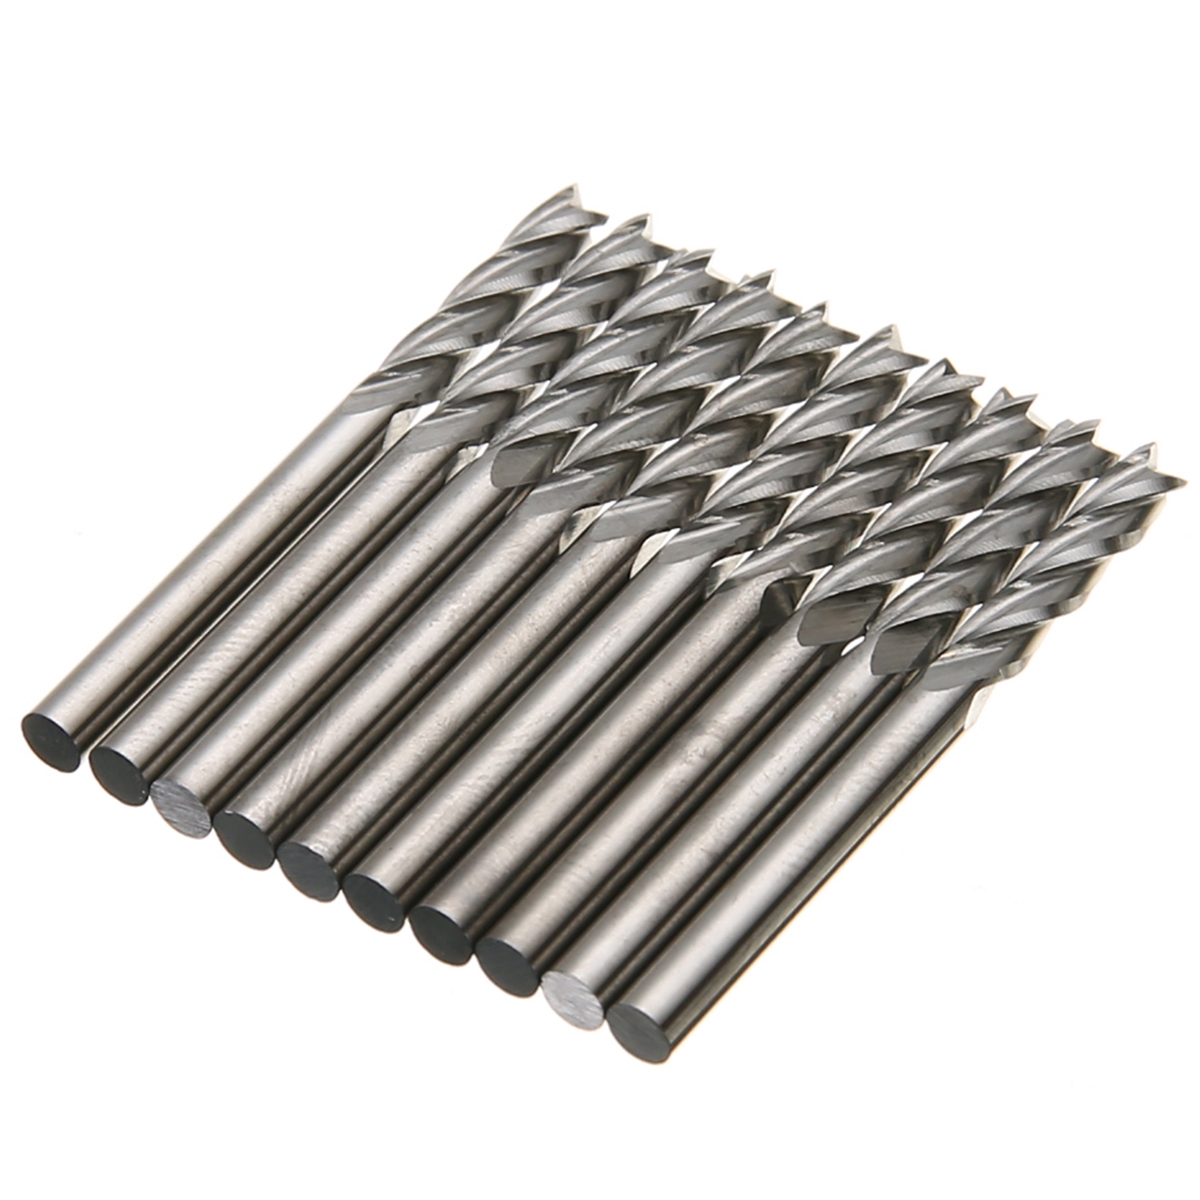 10pcs 4 Flutes Carbide End Mill Cutter 1/8'' Shank Spiral CNC Milling Tool 15mm For Hard Wood PVC Milling Cutter 10pcs box 1 8 inch 0 8 3 17mm pcb smt cnc mould pastic fiber carbon fiber engraving cutter rotary cnc cemented carbide end mill